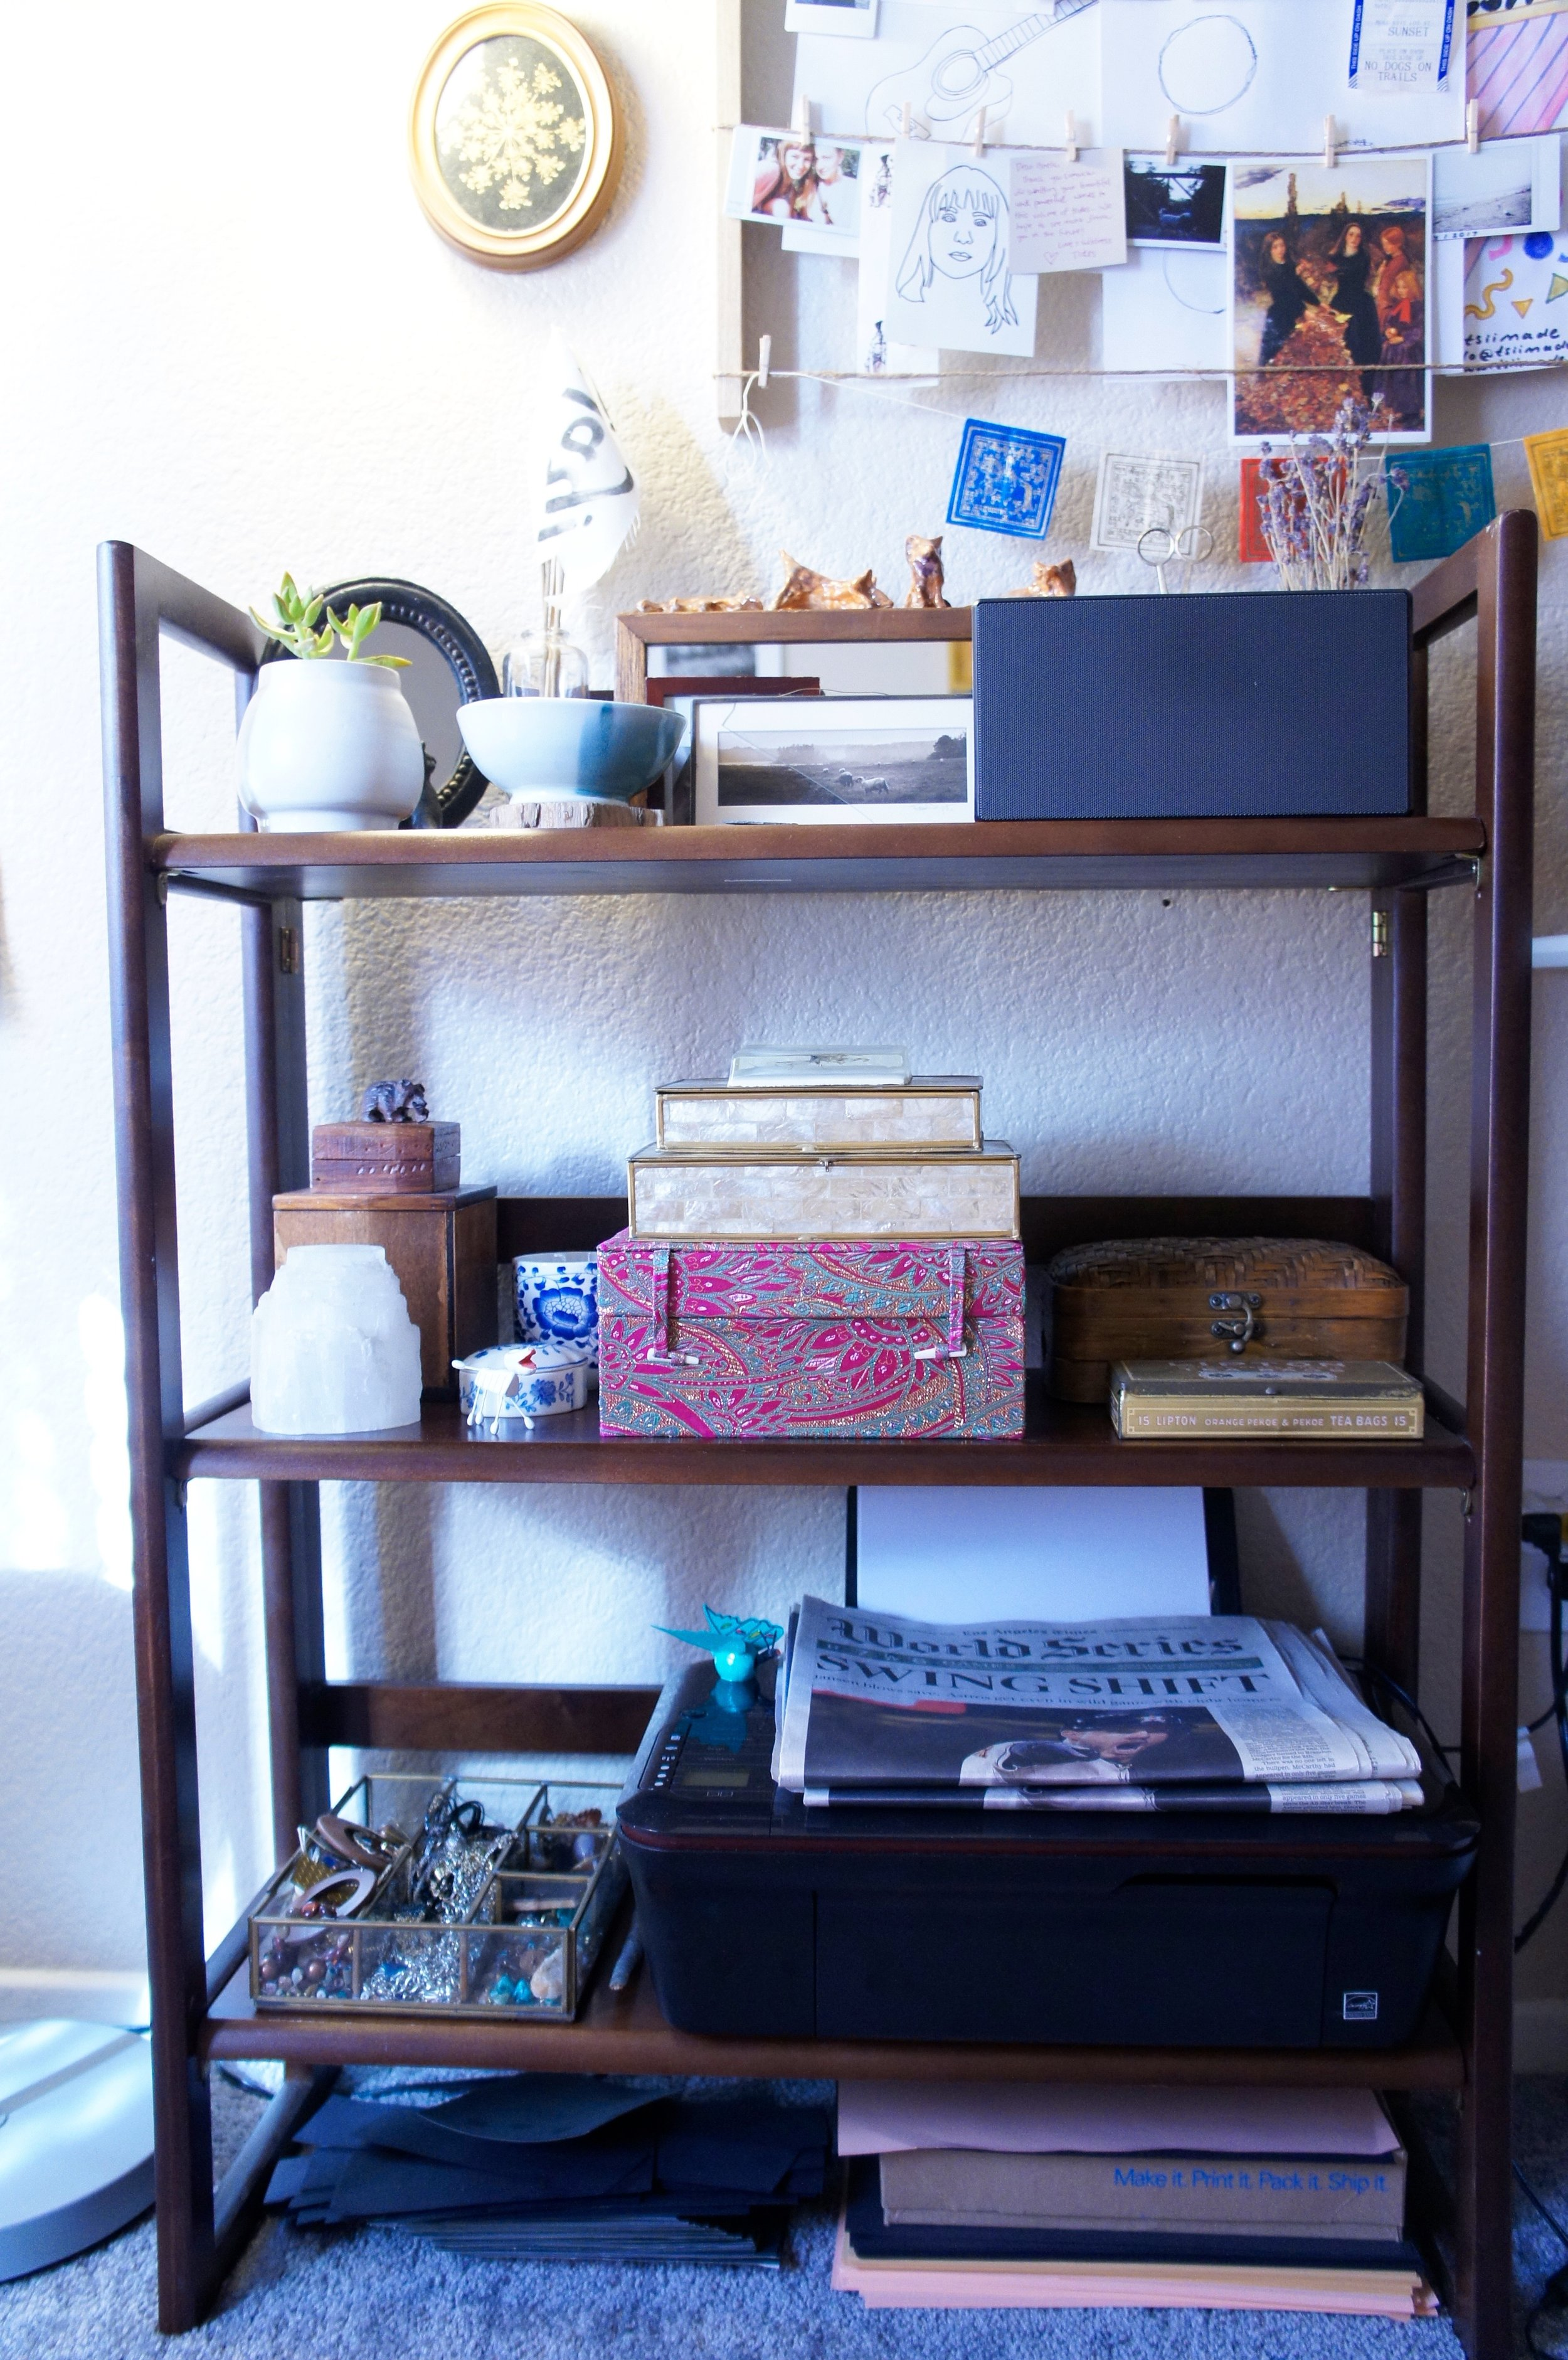 I store my jewelry supplies in my vintage box & tin collection. also shown:    la times featuring my block cloth shirts   , waiting for frames. try displaying any press on your work in your fame gua.